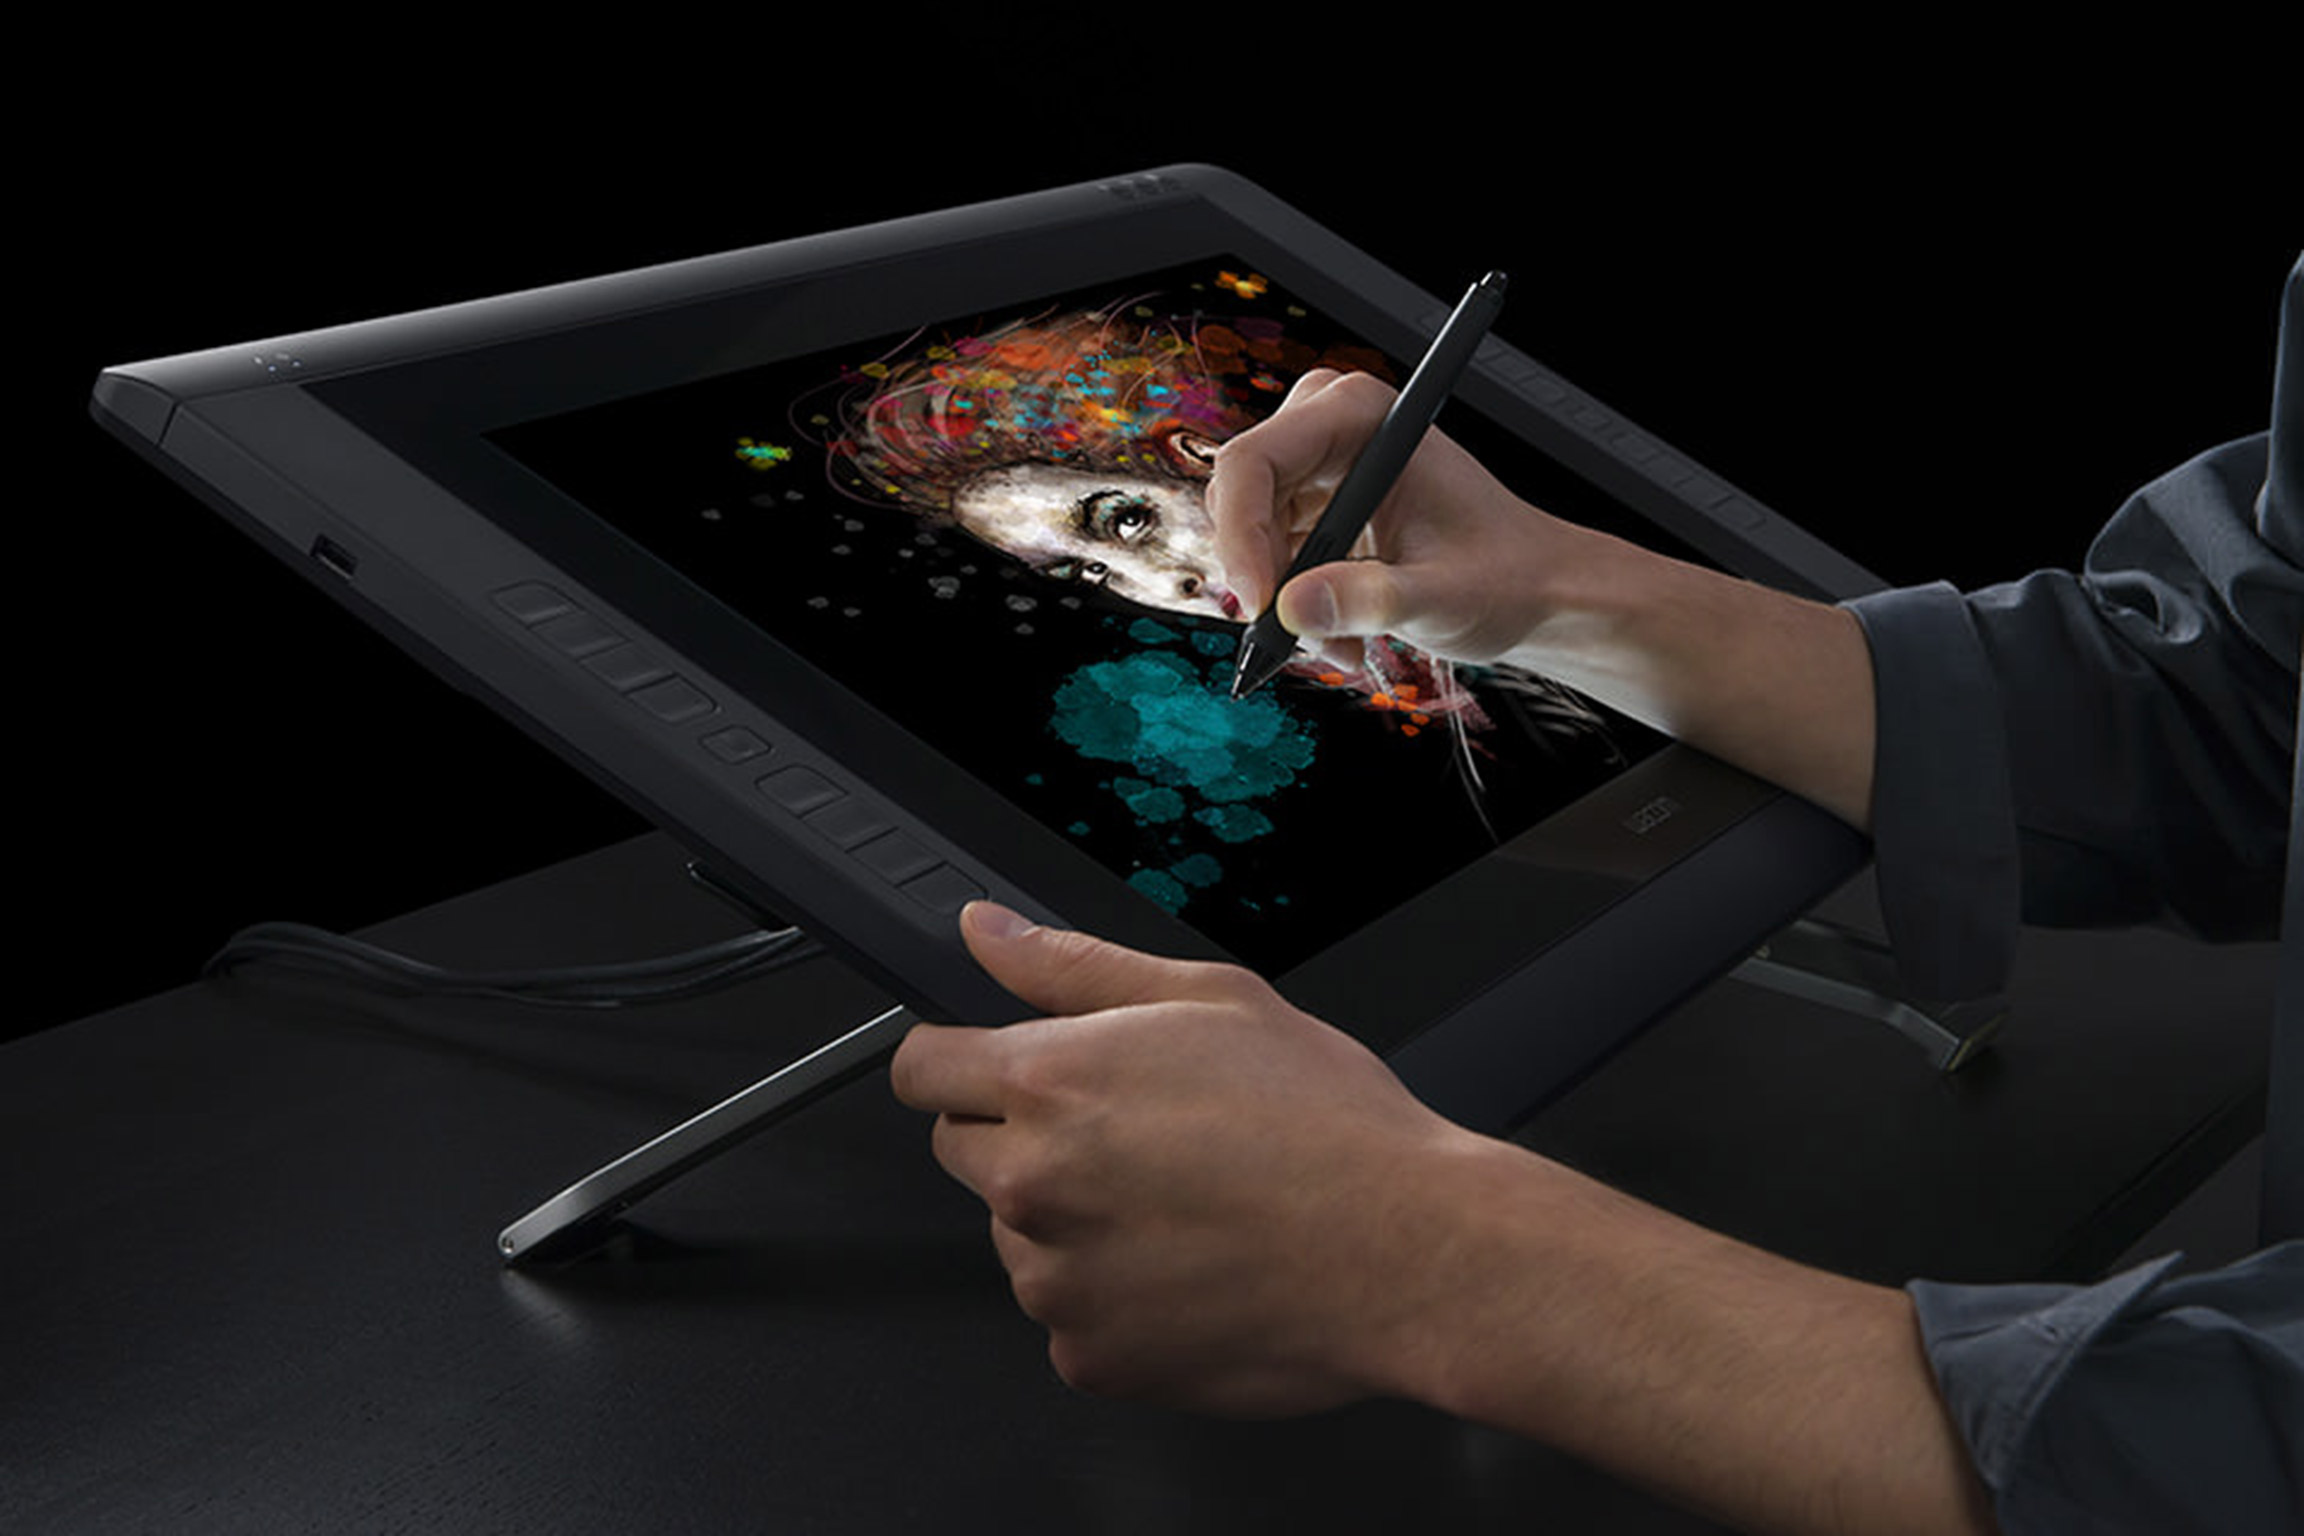 Wacom products showcase